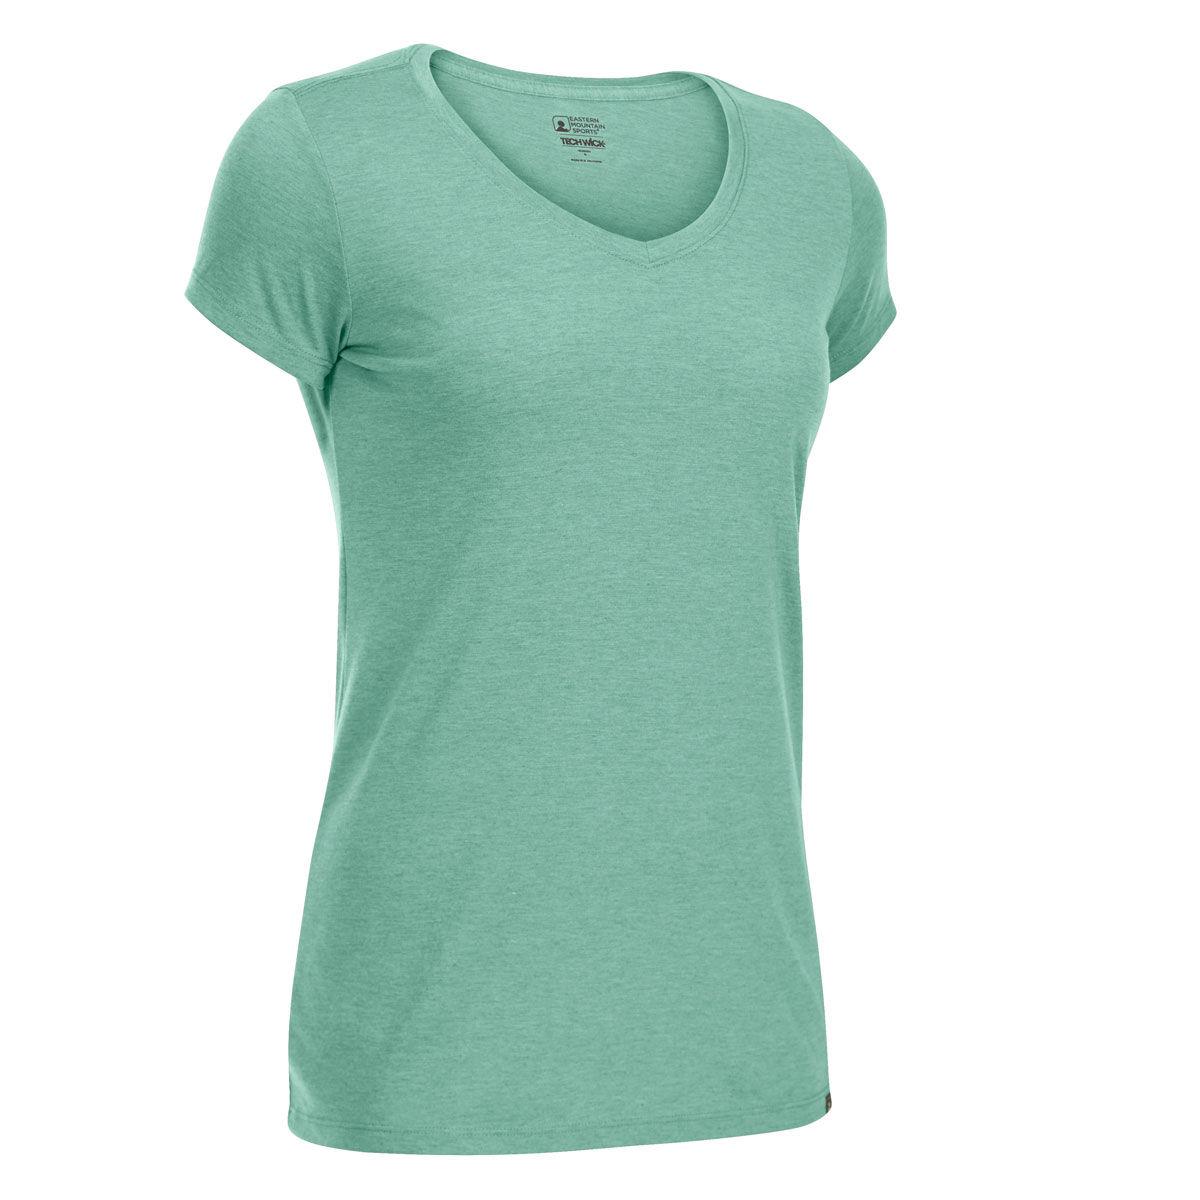 Ems Women's Techwick Vital V-Neck Short-Sleeve Tee - Green, S